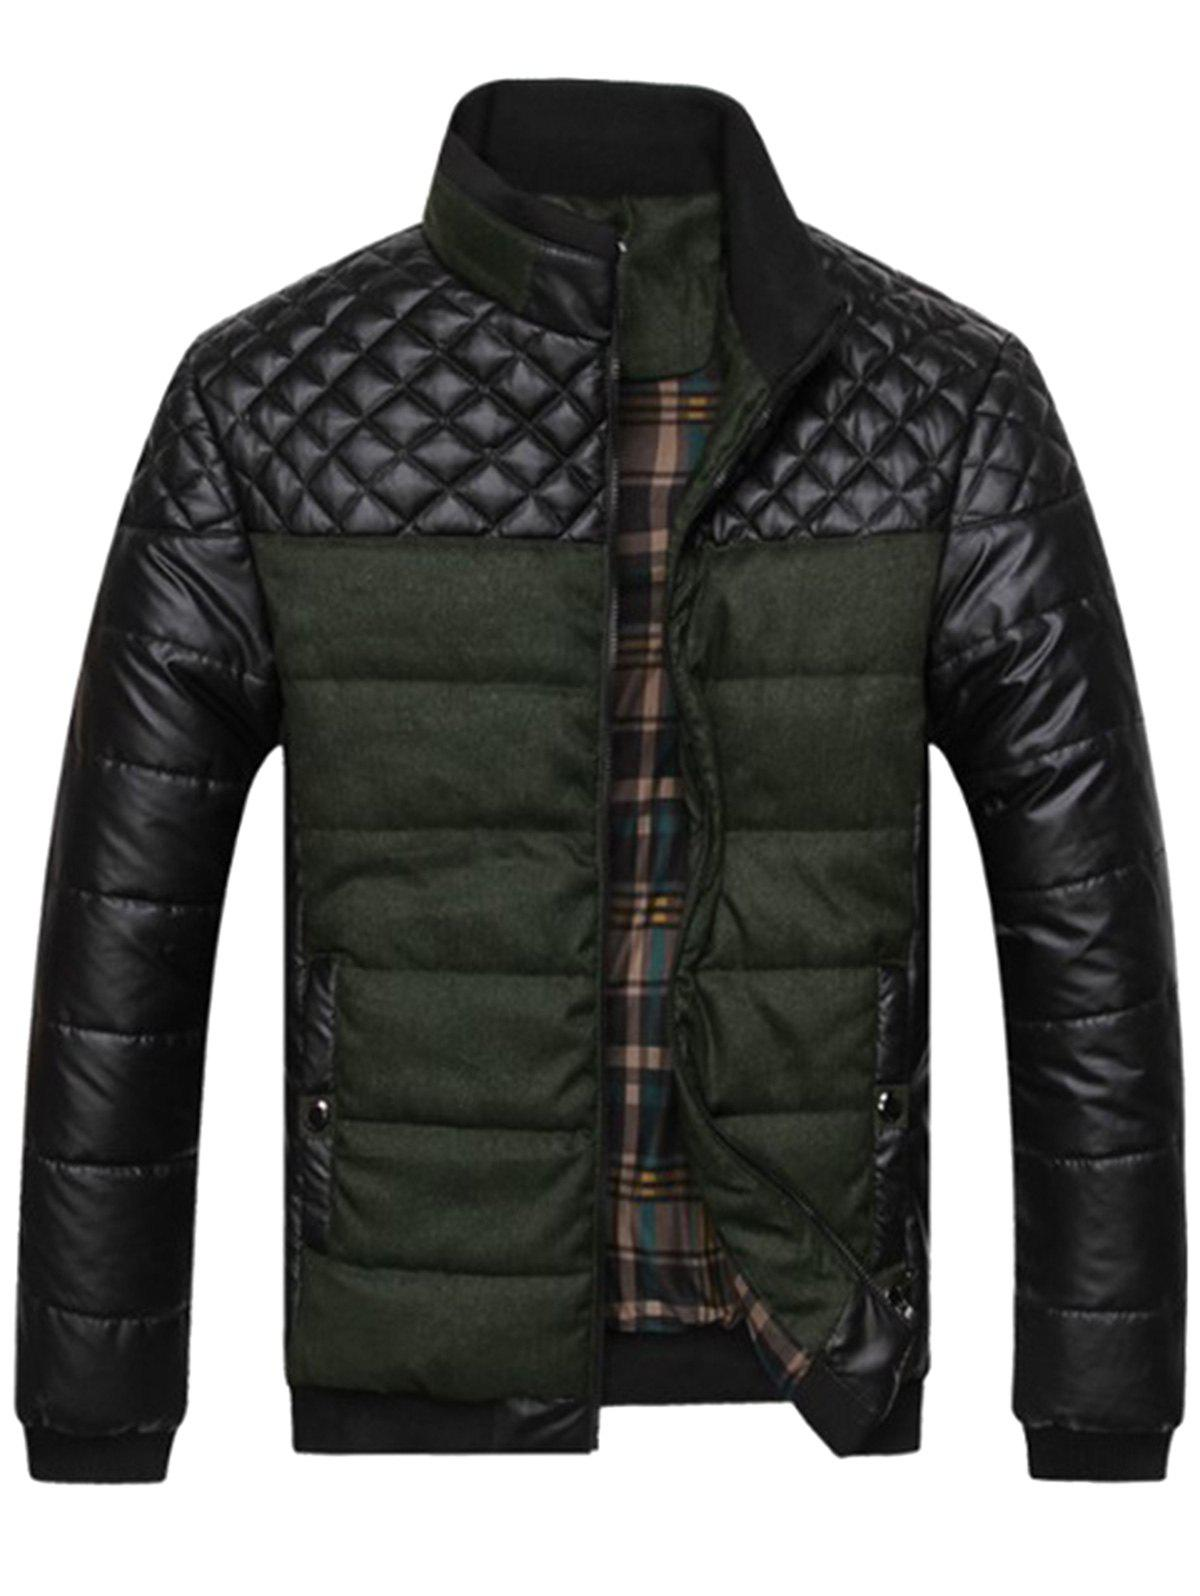 Veste en cuir artificiel Argyle Color Block - Vert Armée 3XL